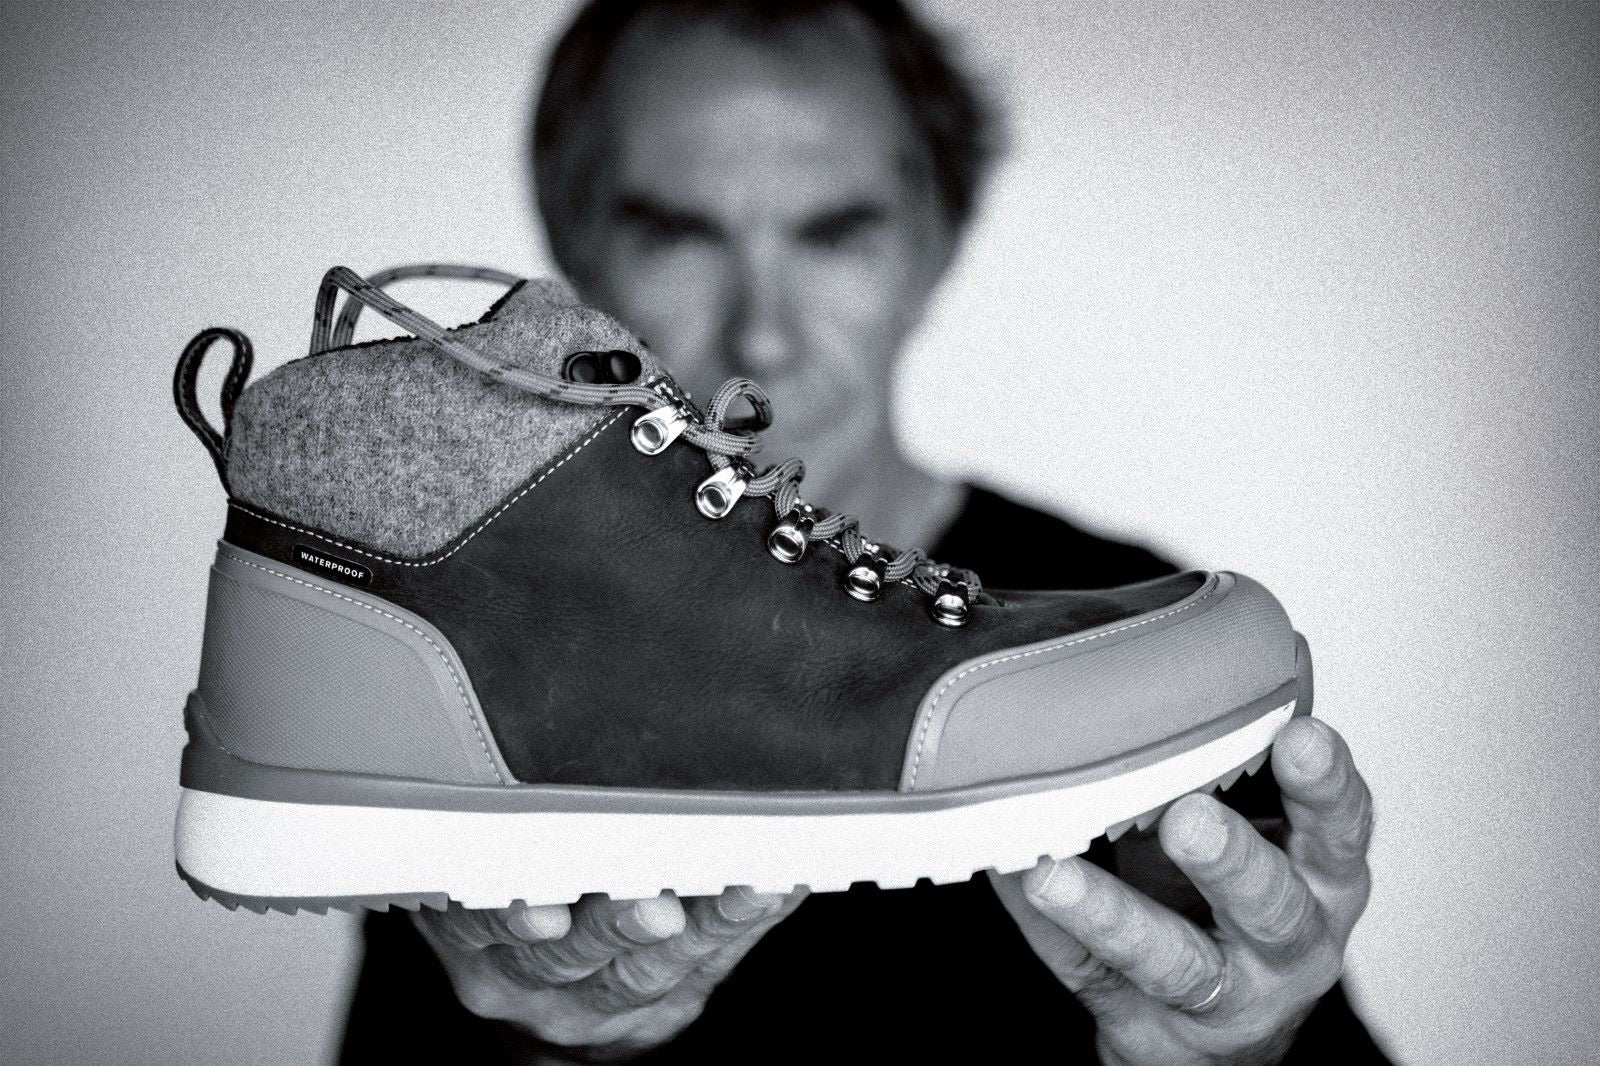 black and white image of a sneaker  boot held by innovator and business man, Jean-Luc Diard